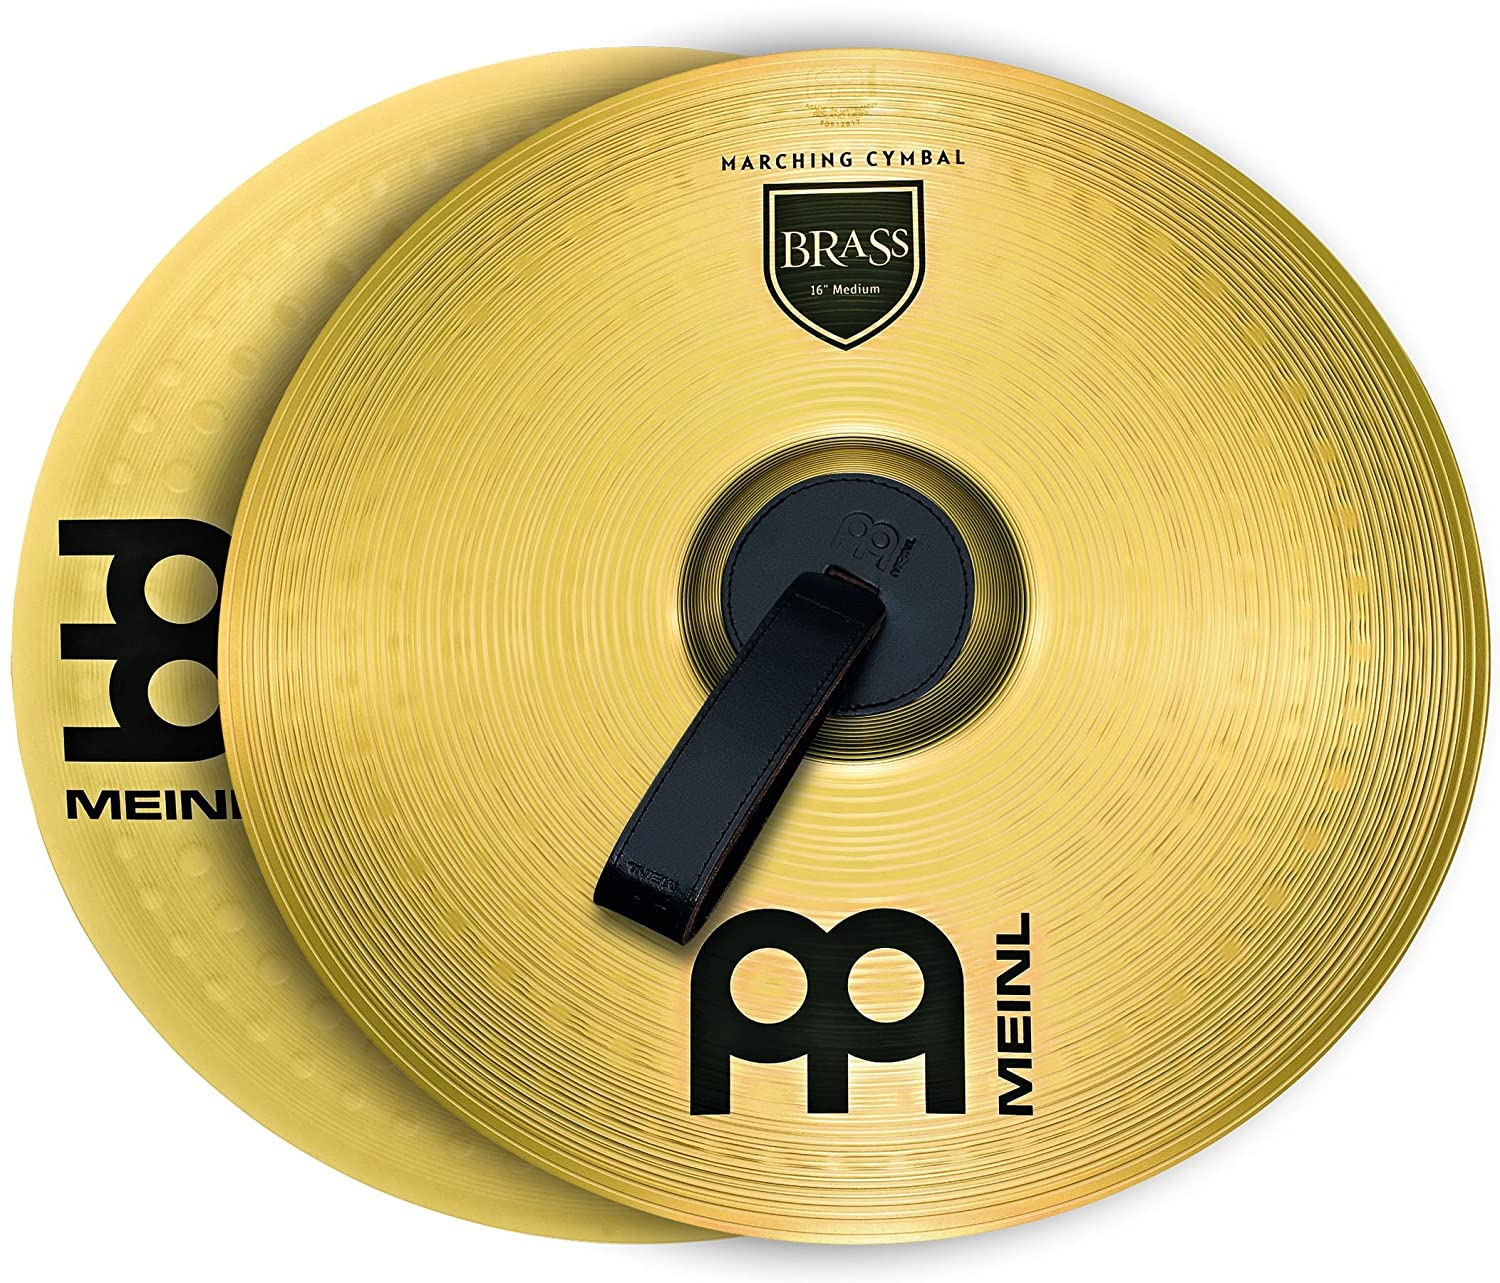 Meinl Cymbals MA-BR-18M Brass Marching Cymbal Pair with Straps, Traditional Meinl USA L.C.